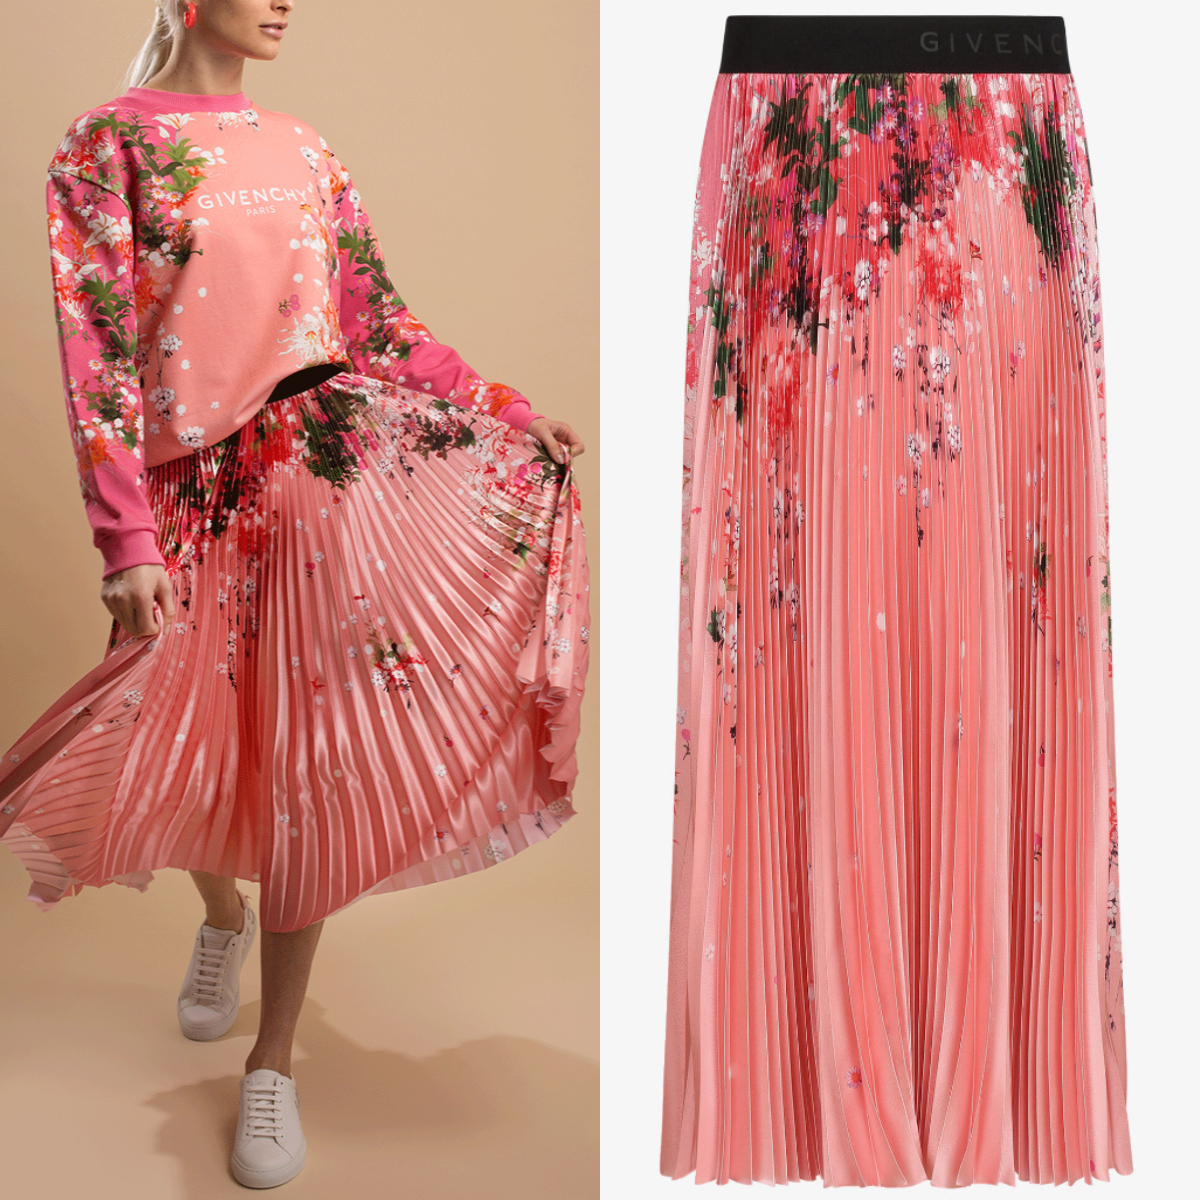 G632 FLORAL PRINT PLEATED SKIRT (GIVENCHY/スカート) BW40D412NA-651